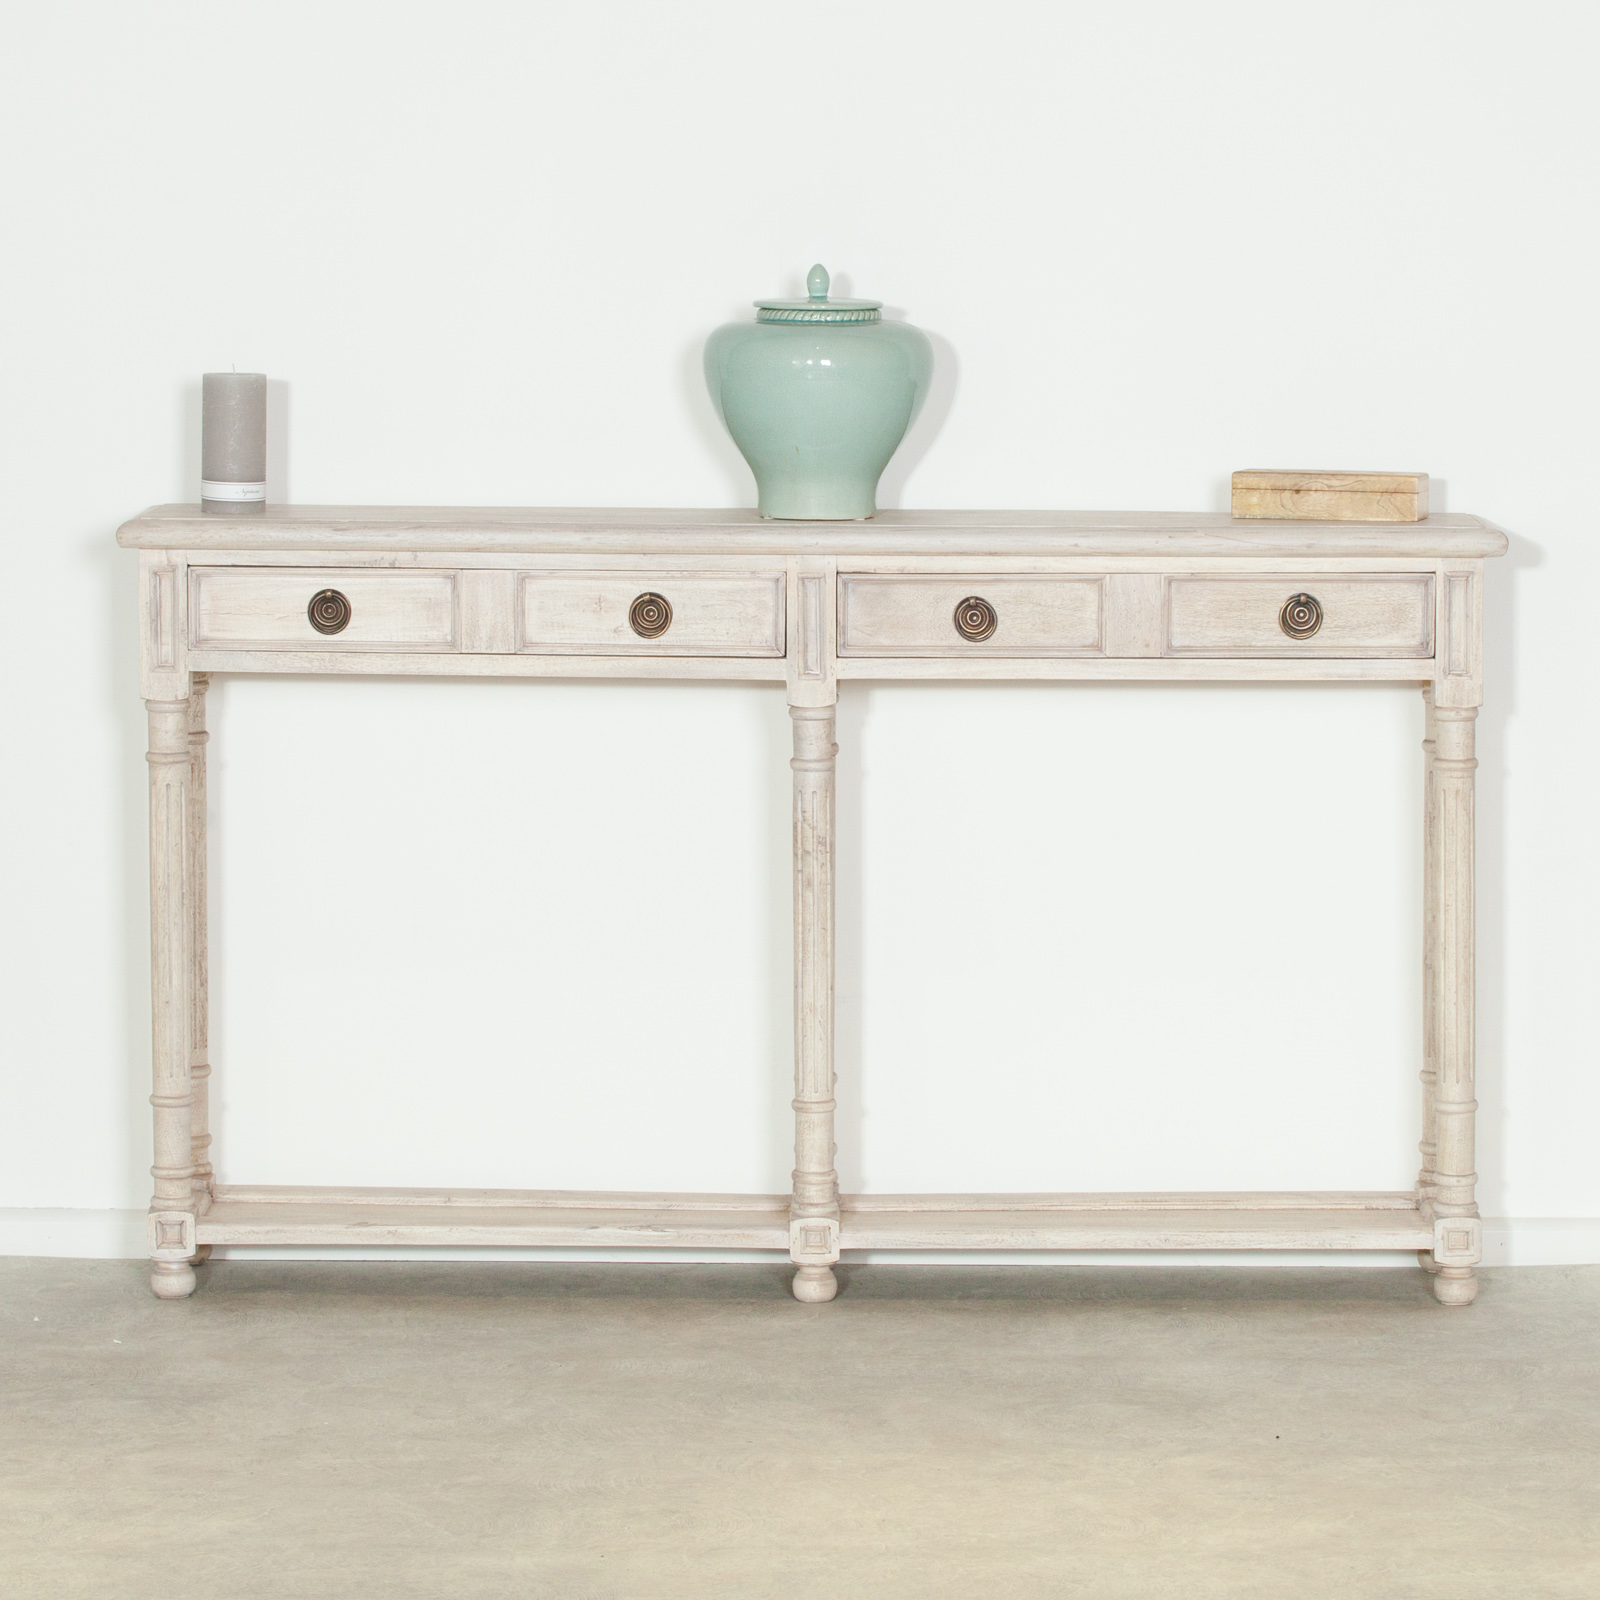 White Resin Folding Table, Acacia Slim 2 Drawer Wooden Console Table Furniture La Maison Chic Luxury Interiors